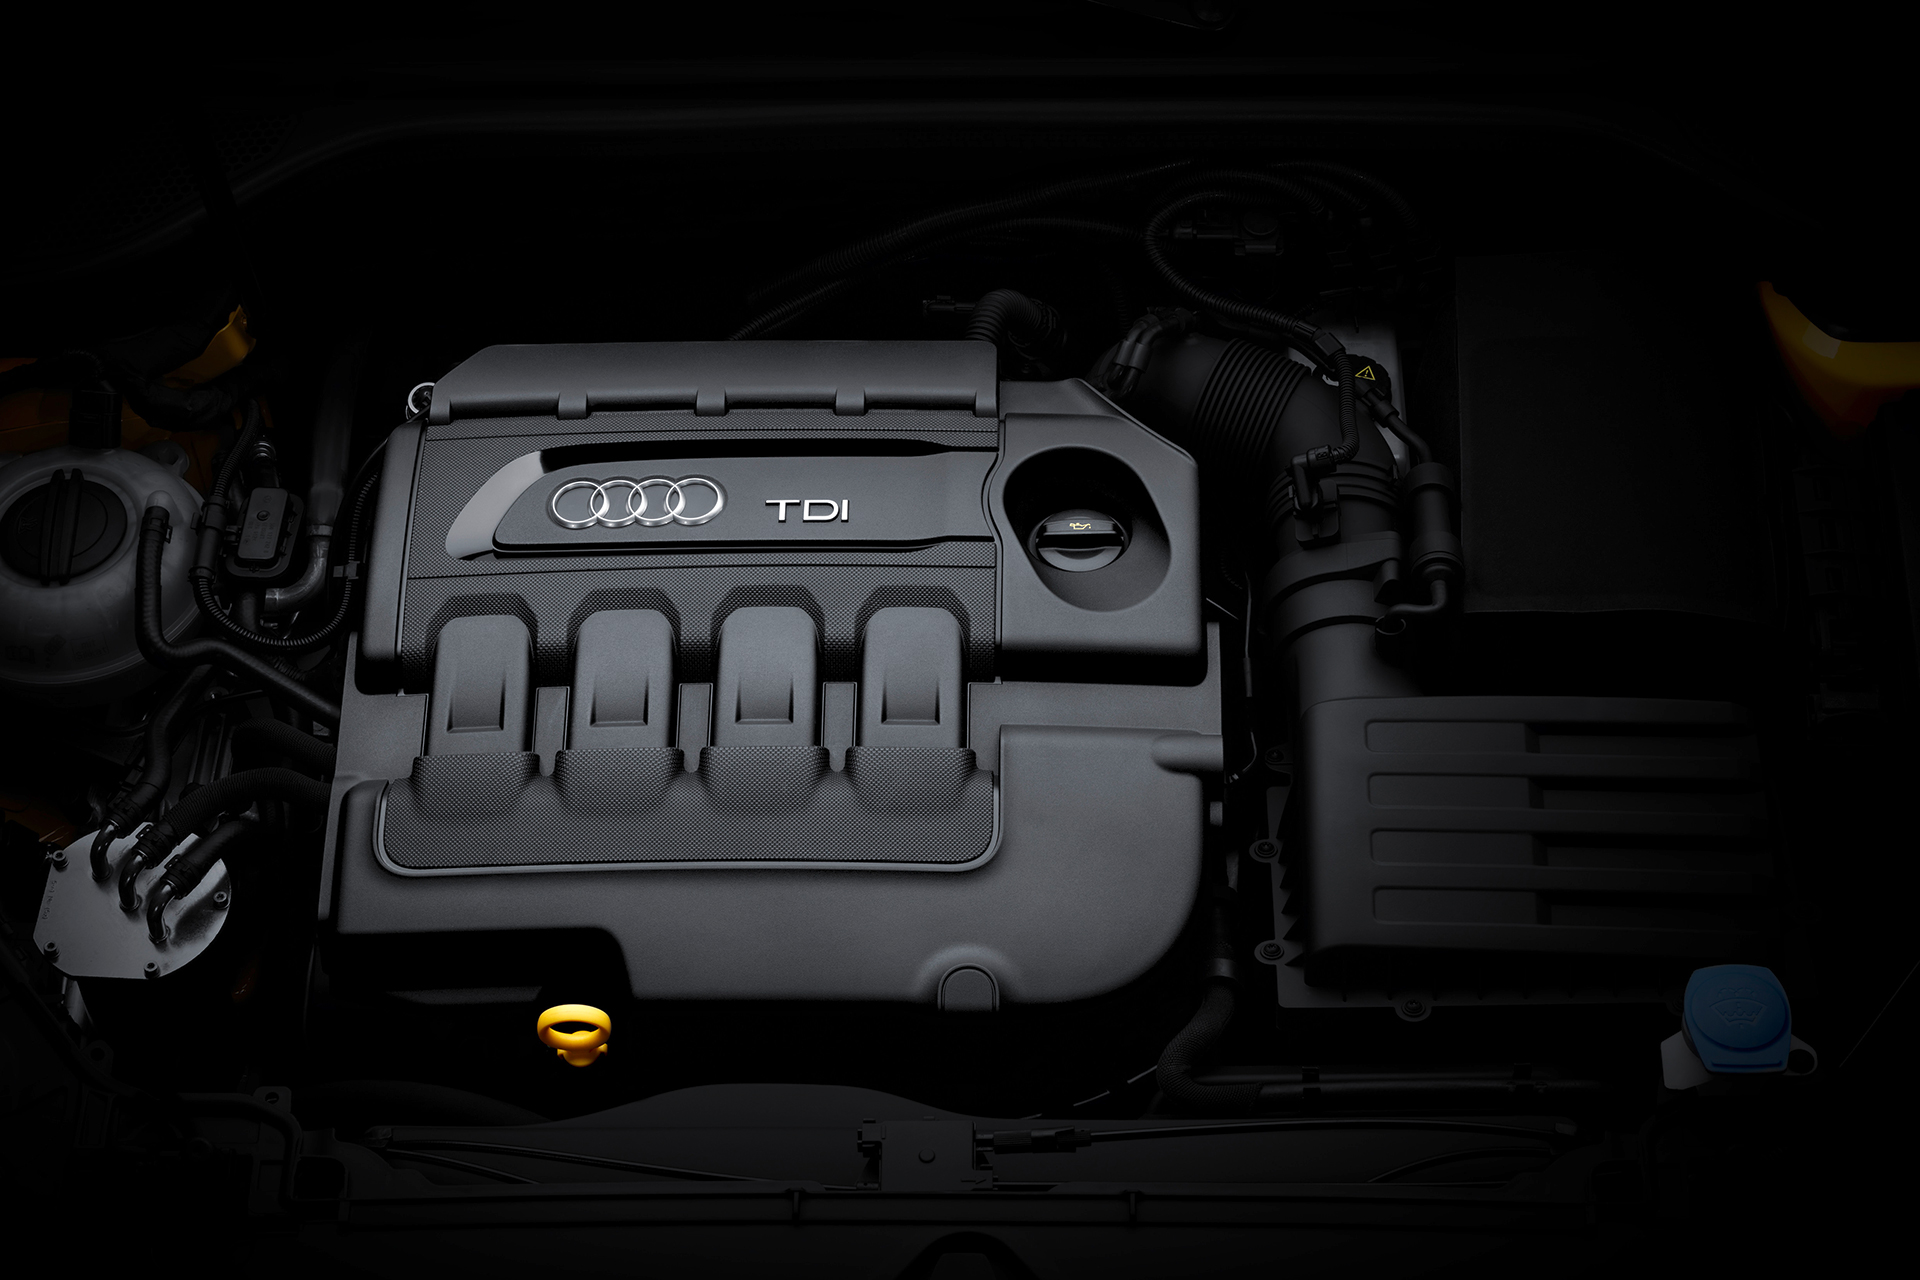 Audi Q2 - TDI - under the hood - sous le capot moteur